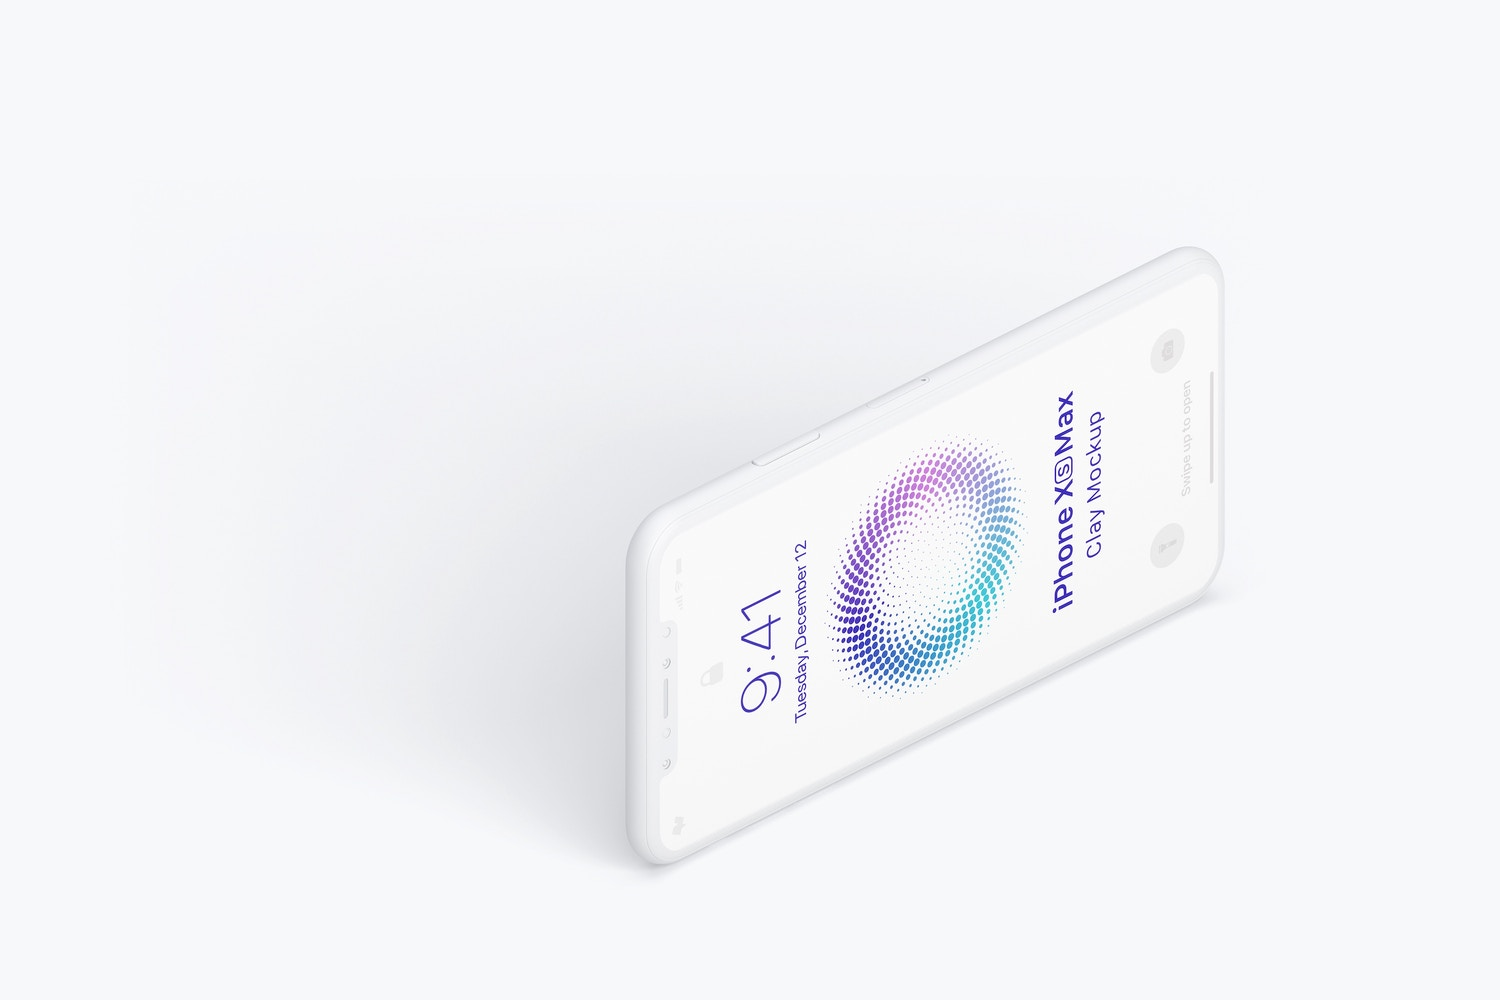 Isometric Clay iPhone XS Max Mockup, Left View 03 by Original Mockups on Original Mockups